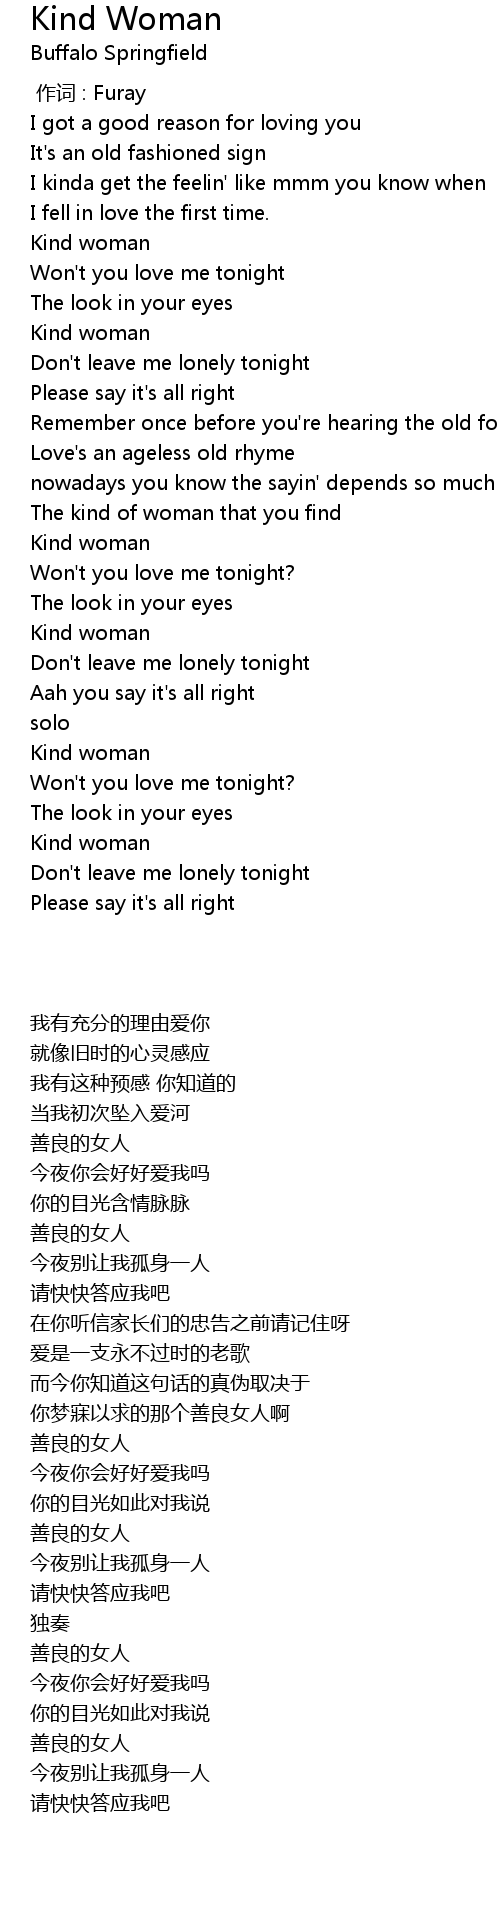 Kind Woman Lyrics Follow Lyrics